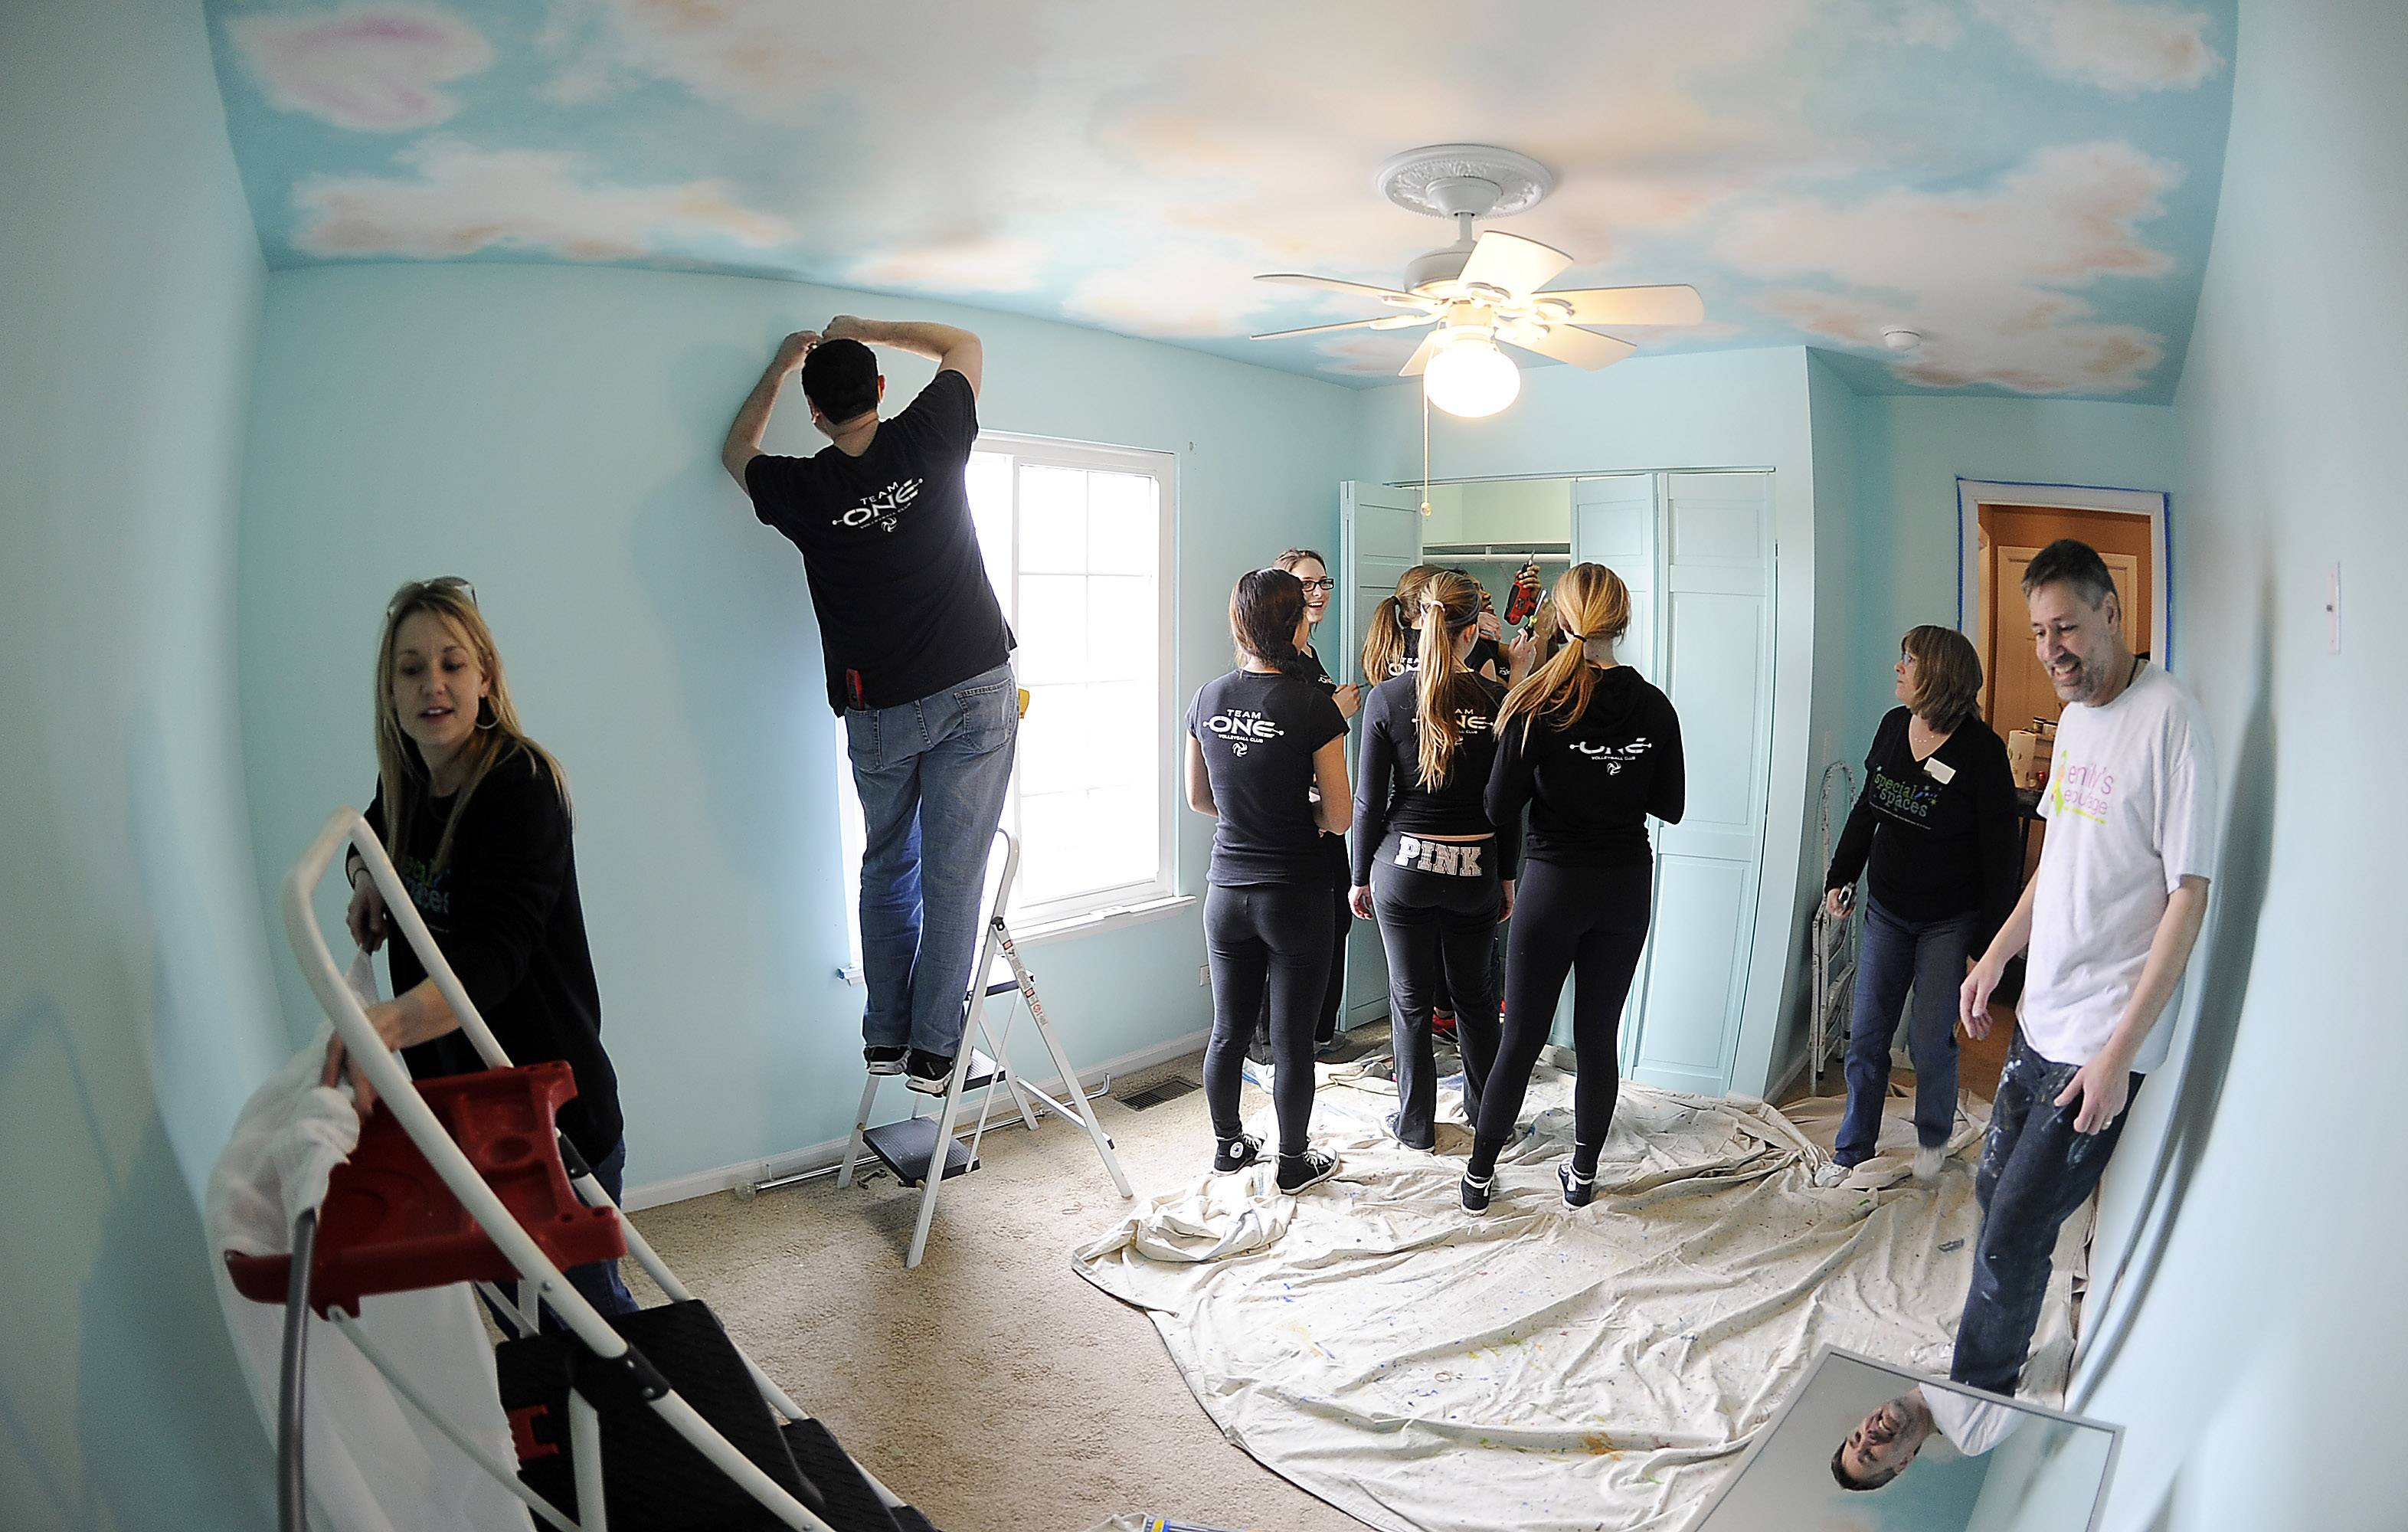 Members of Team One Volleyball club and other personnel work at a fever pitch level trying to get a bedroom makeover done Saturday for a Bartlett girl with a life-threating medical condition.